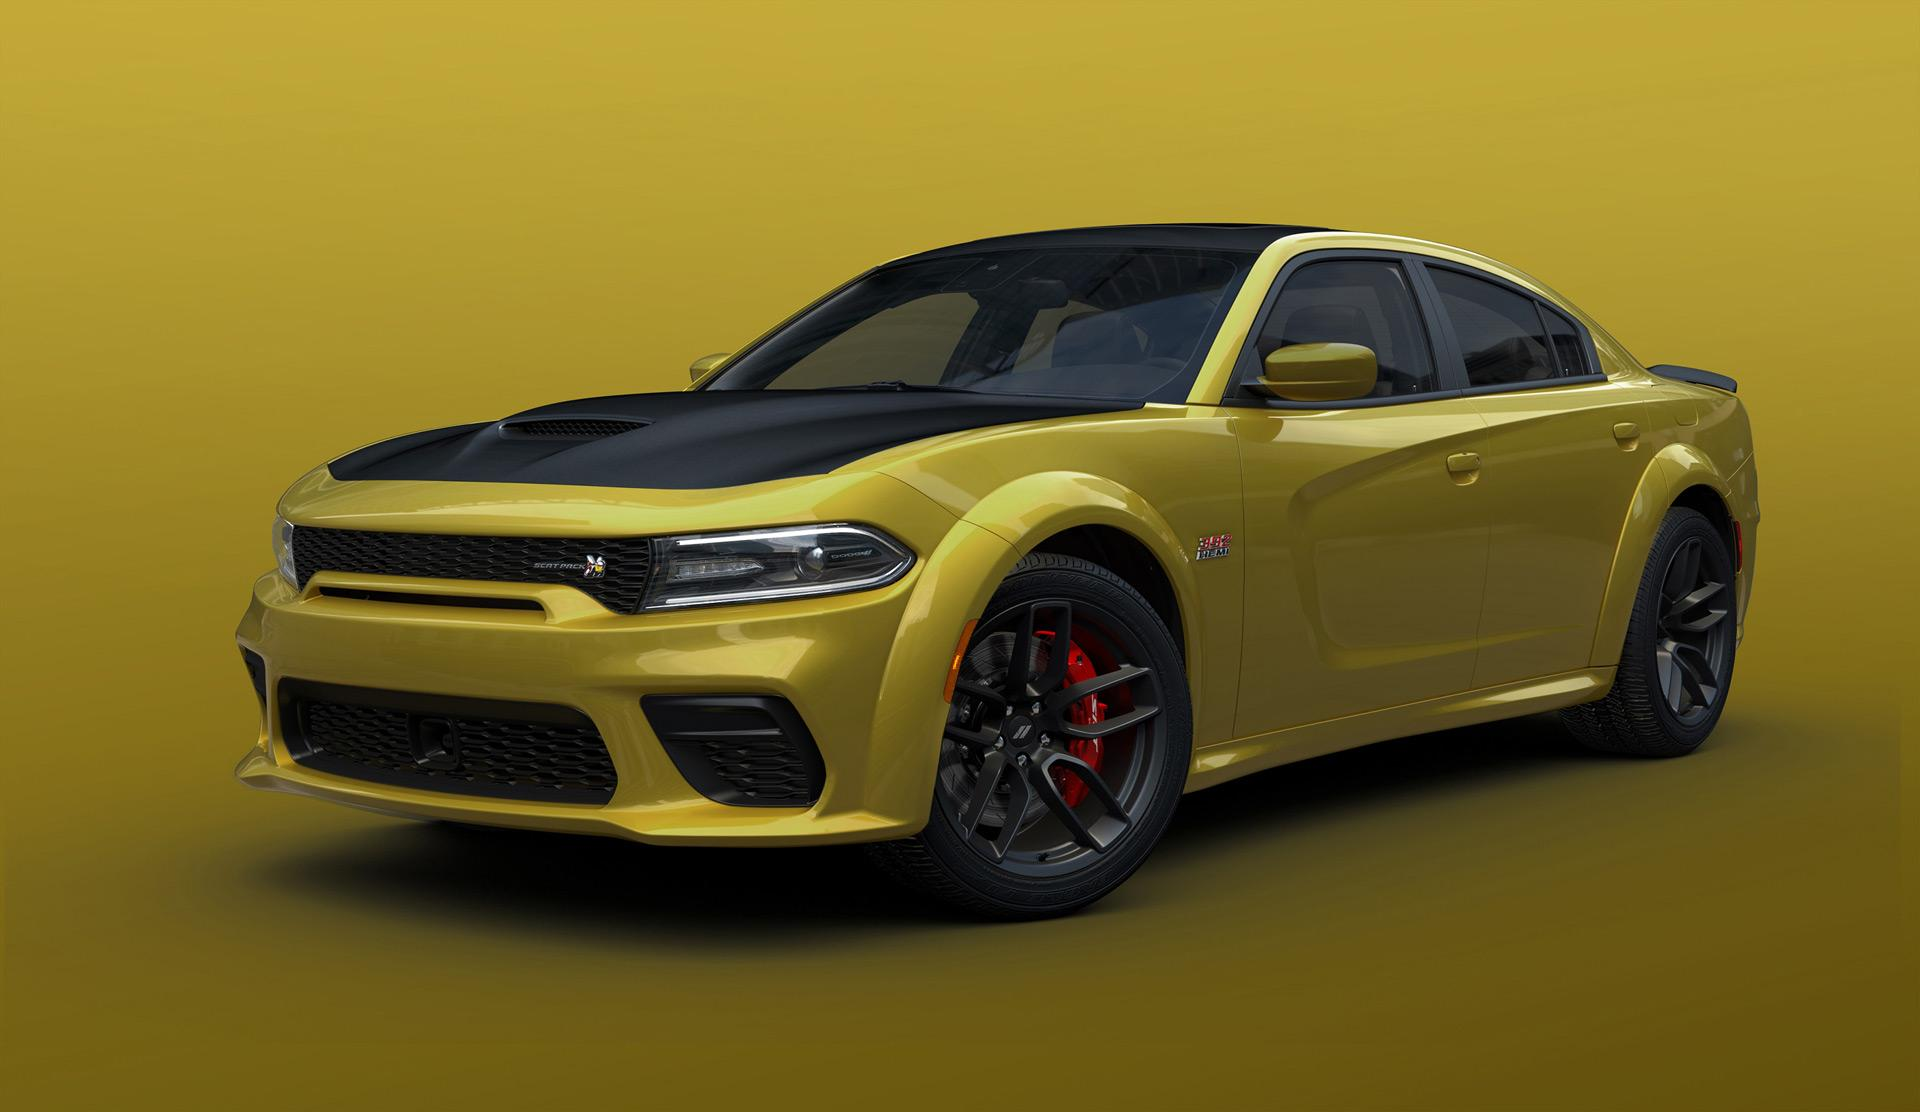 2021 dodge charger scat pack widebody in gold rush paint 100785806 h